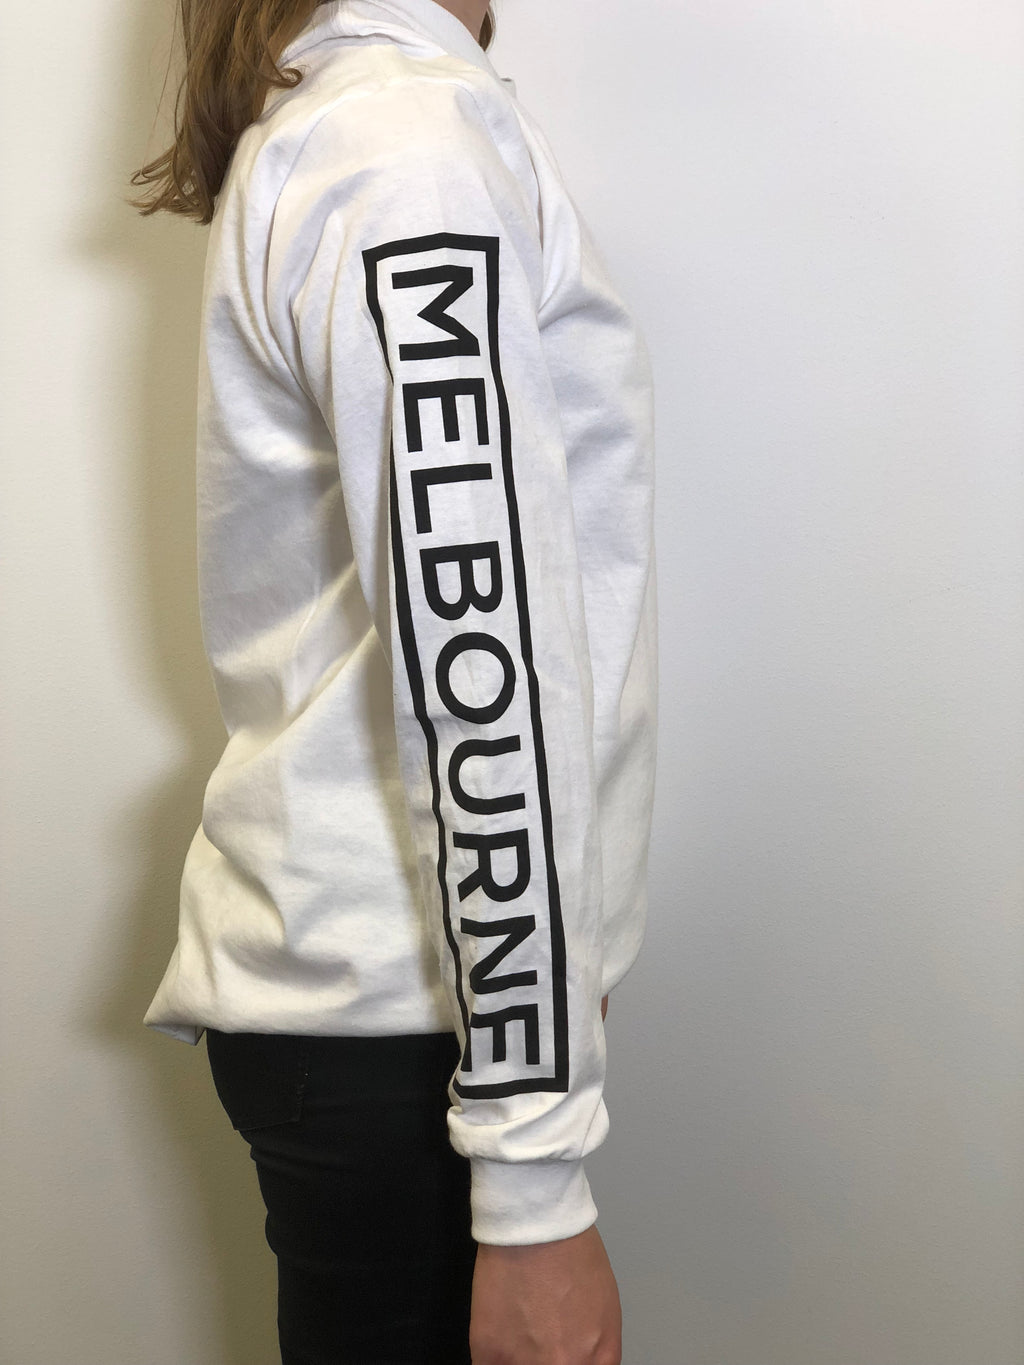 Exclusive Melbourne Longsleeve Tee